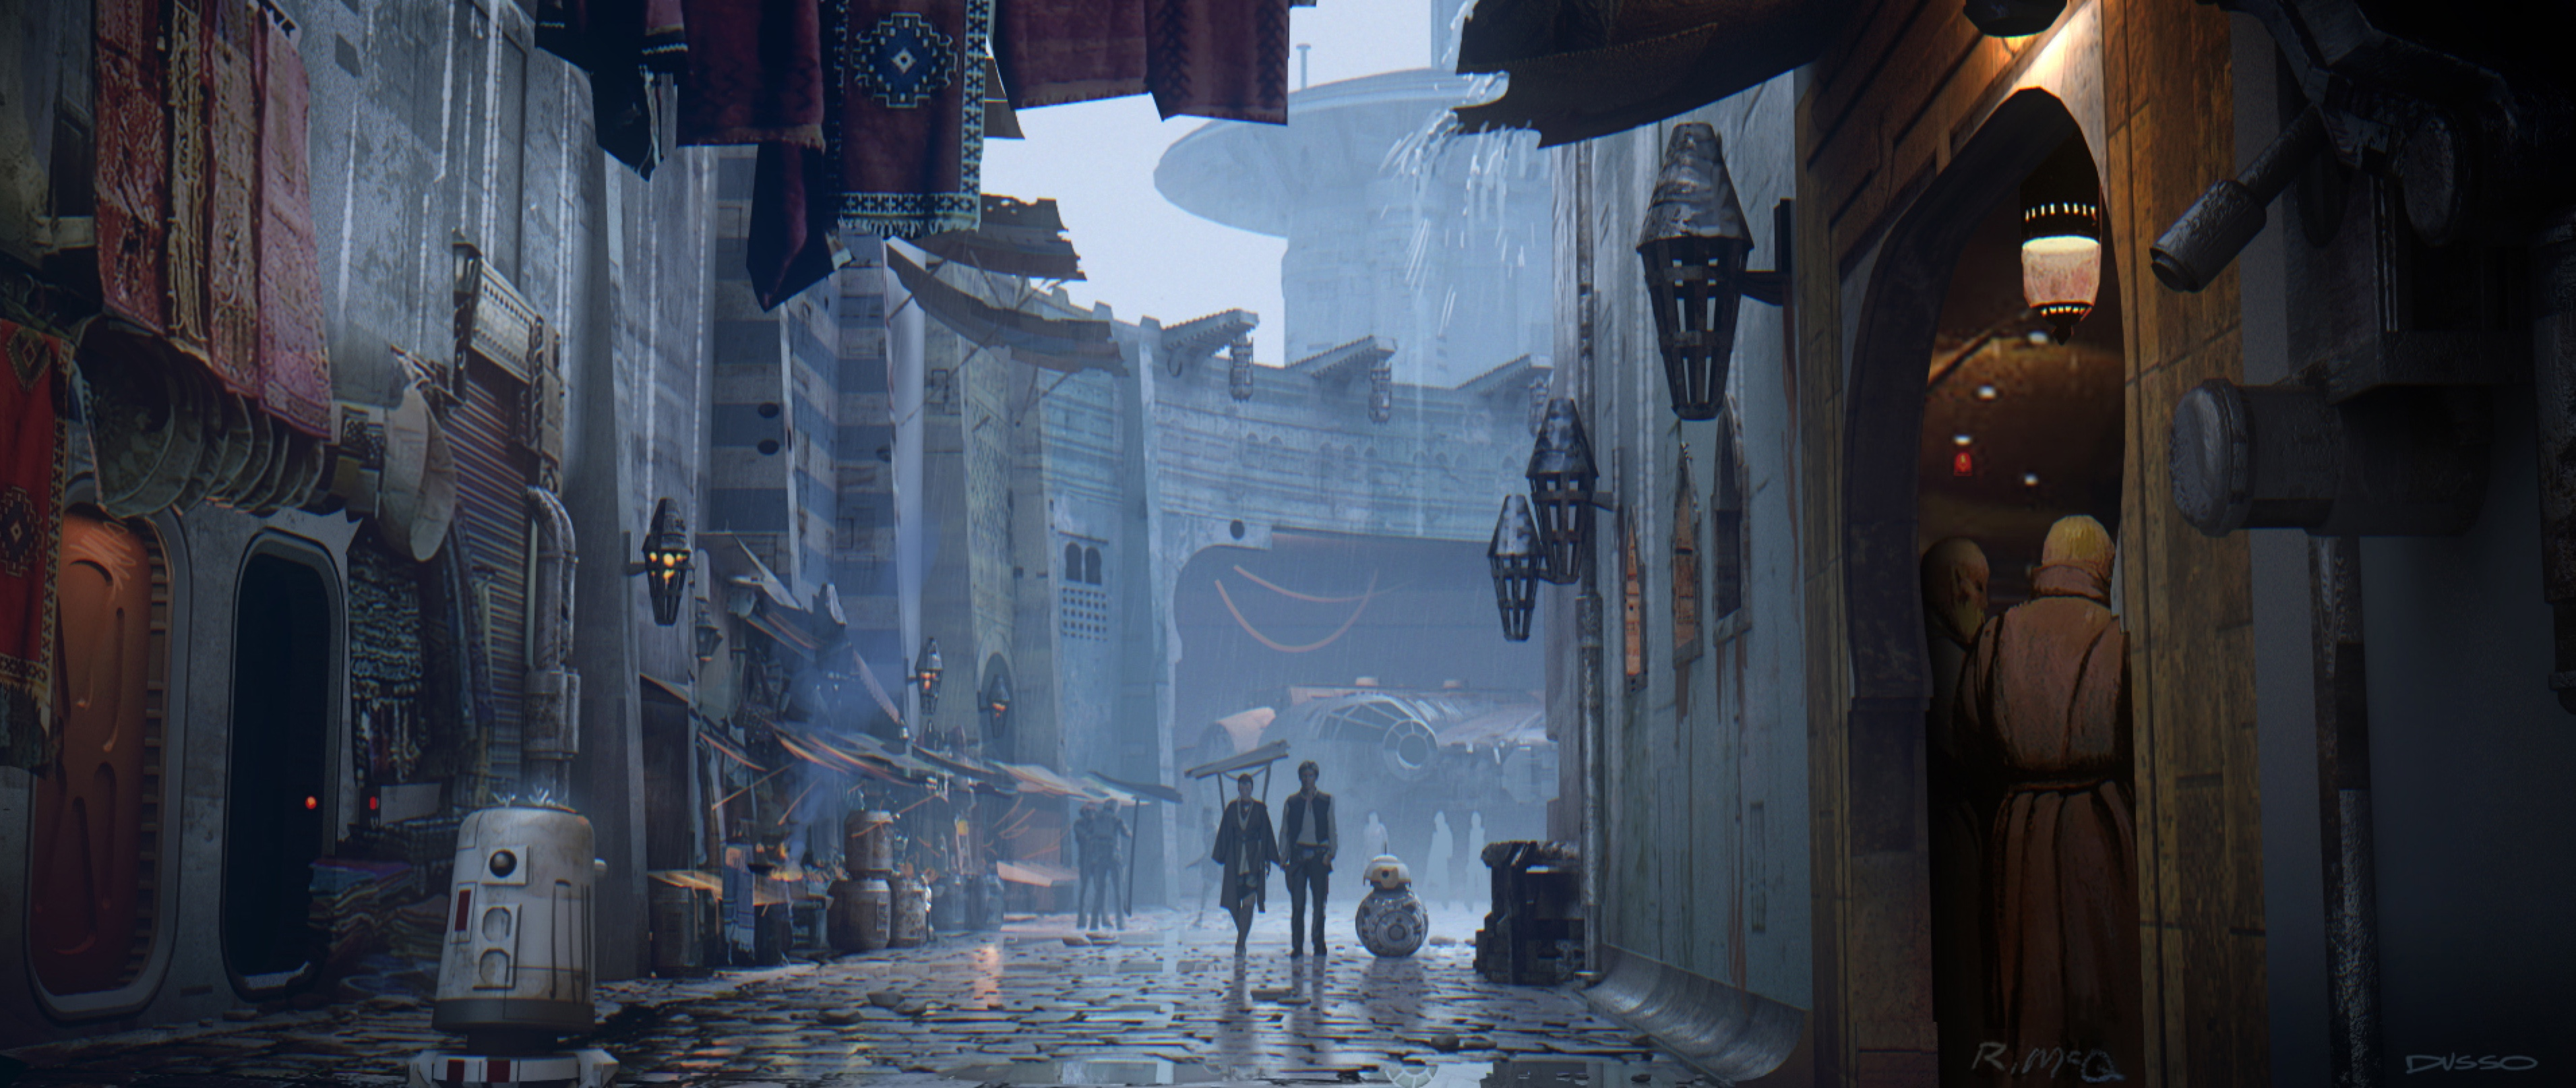 Beautiful Unused Star Wars: The Force Awakens Concept Art